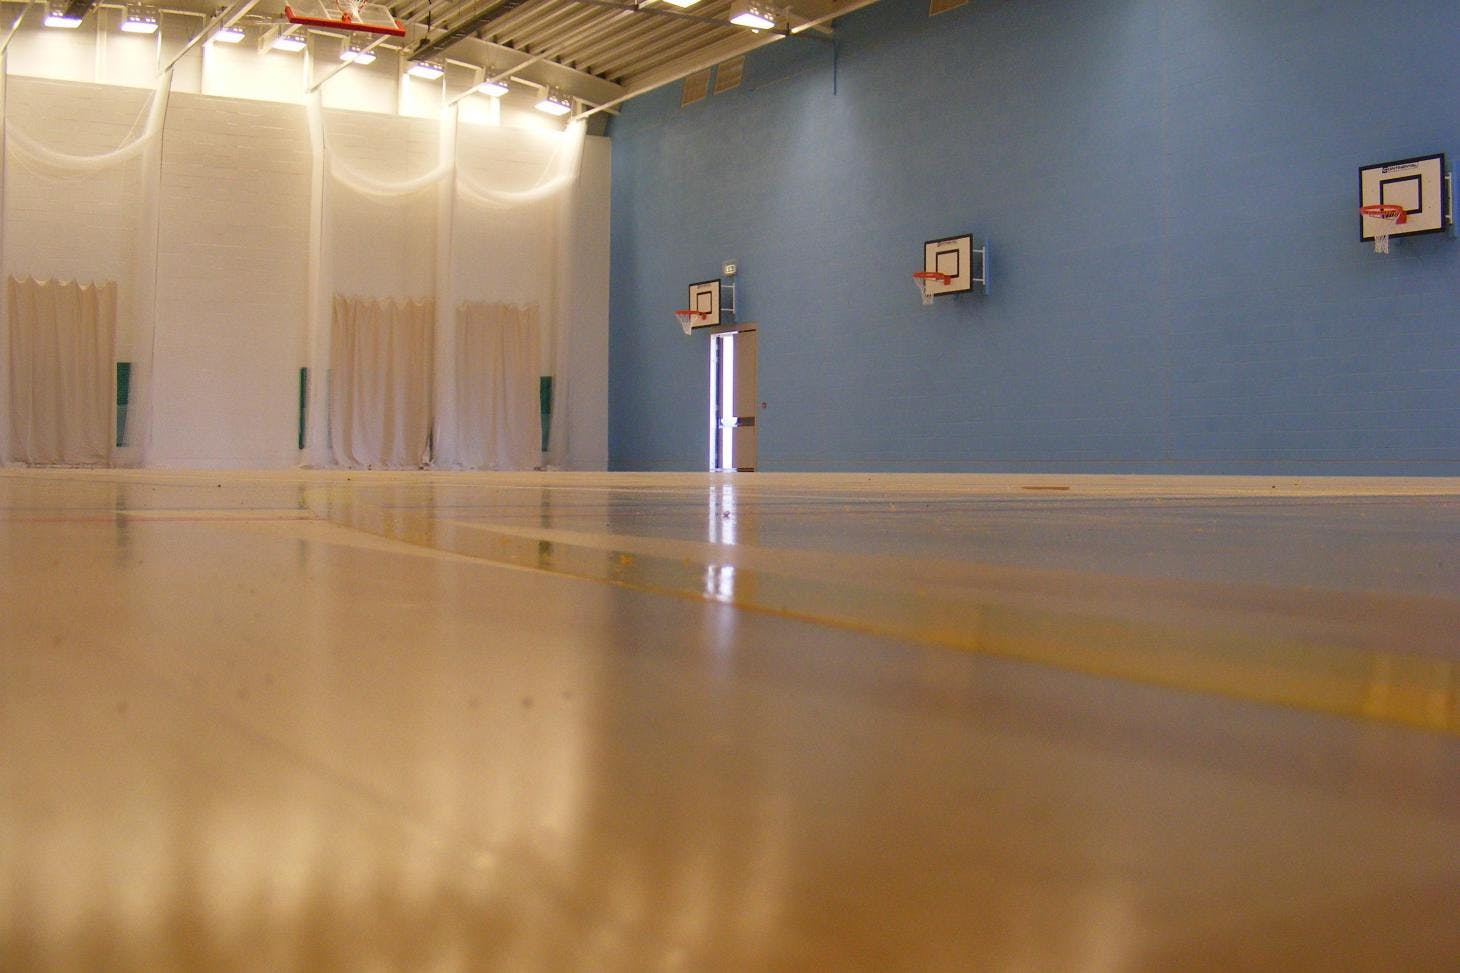 Dagenham Park Leisure Centre Indoor netball court